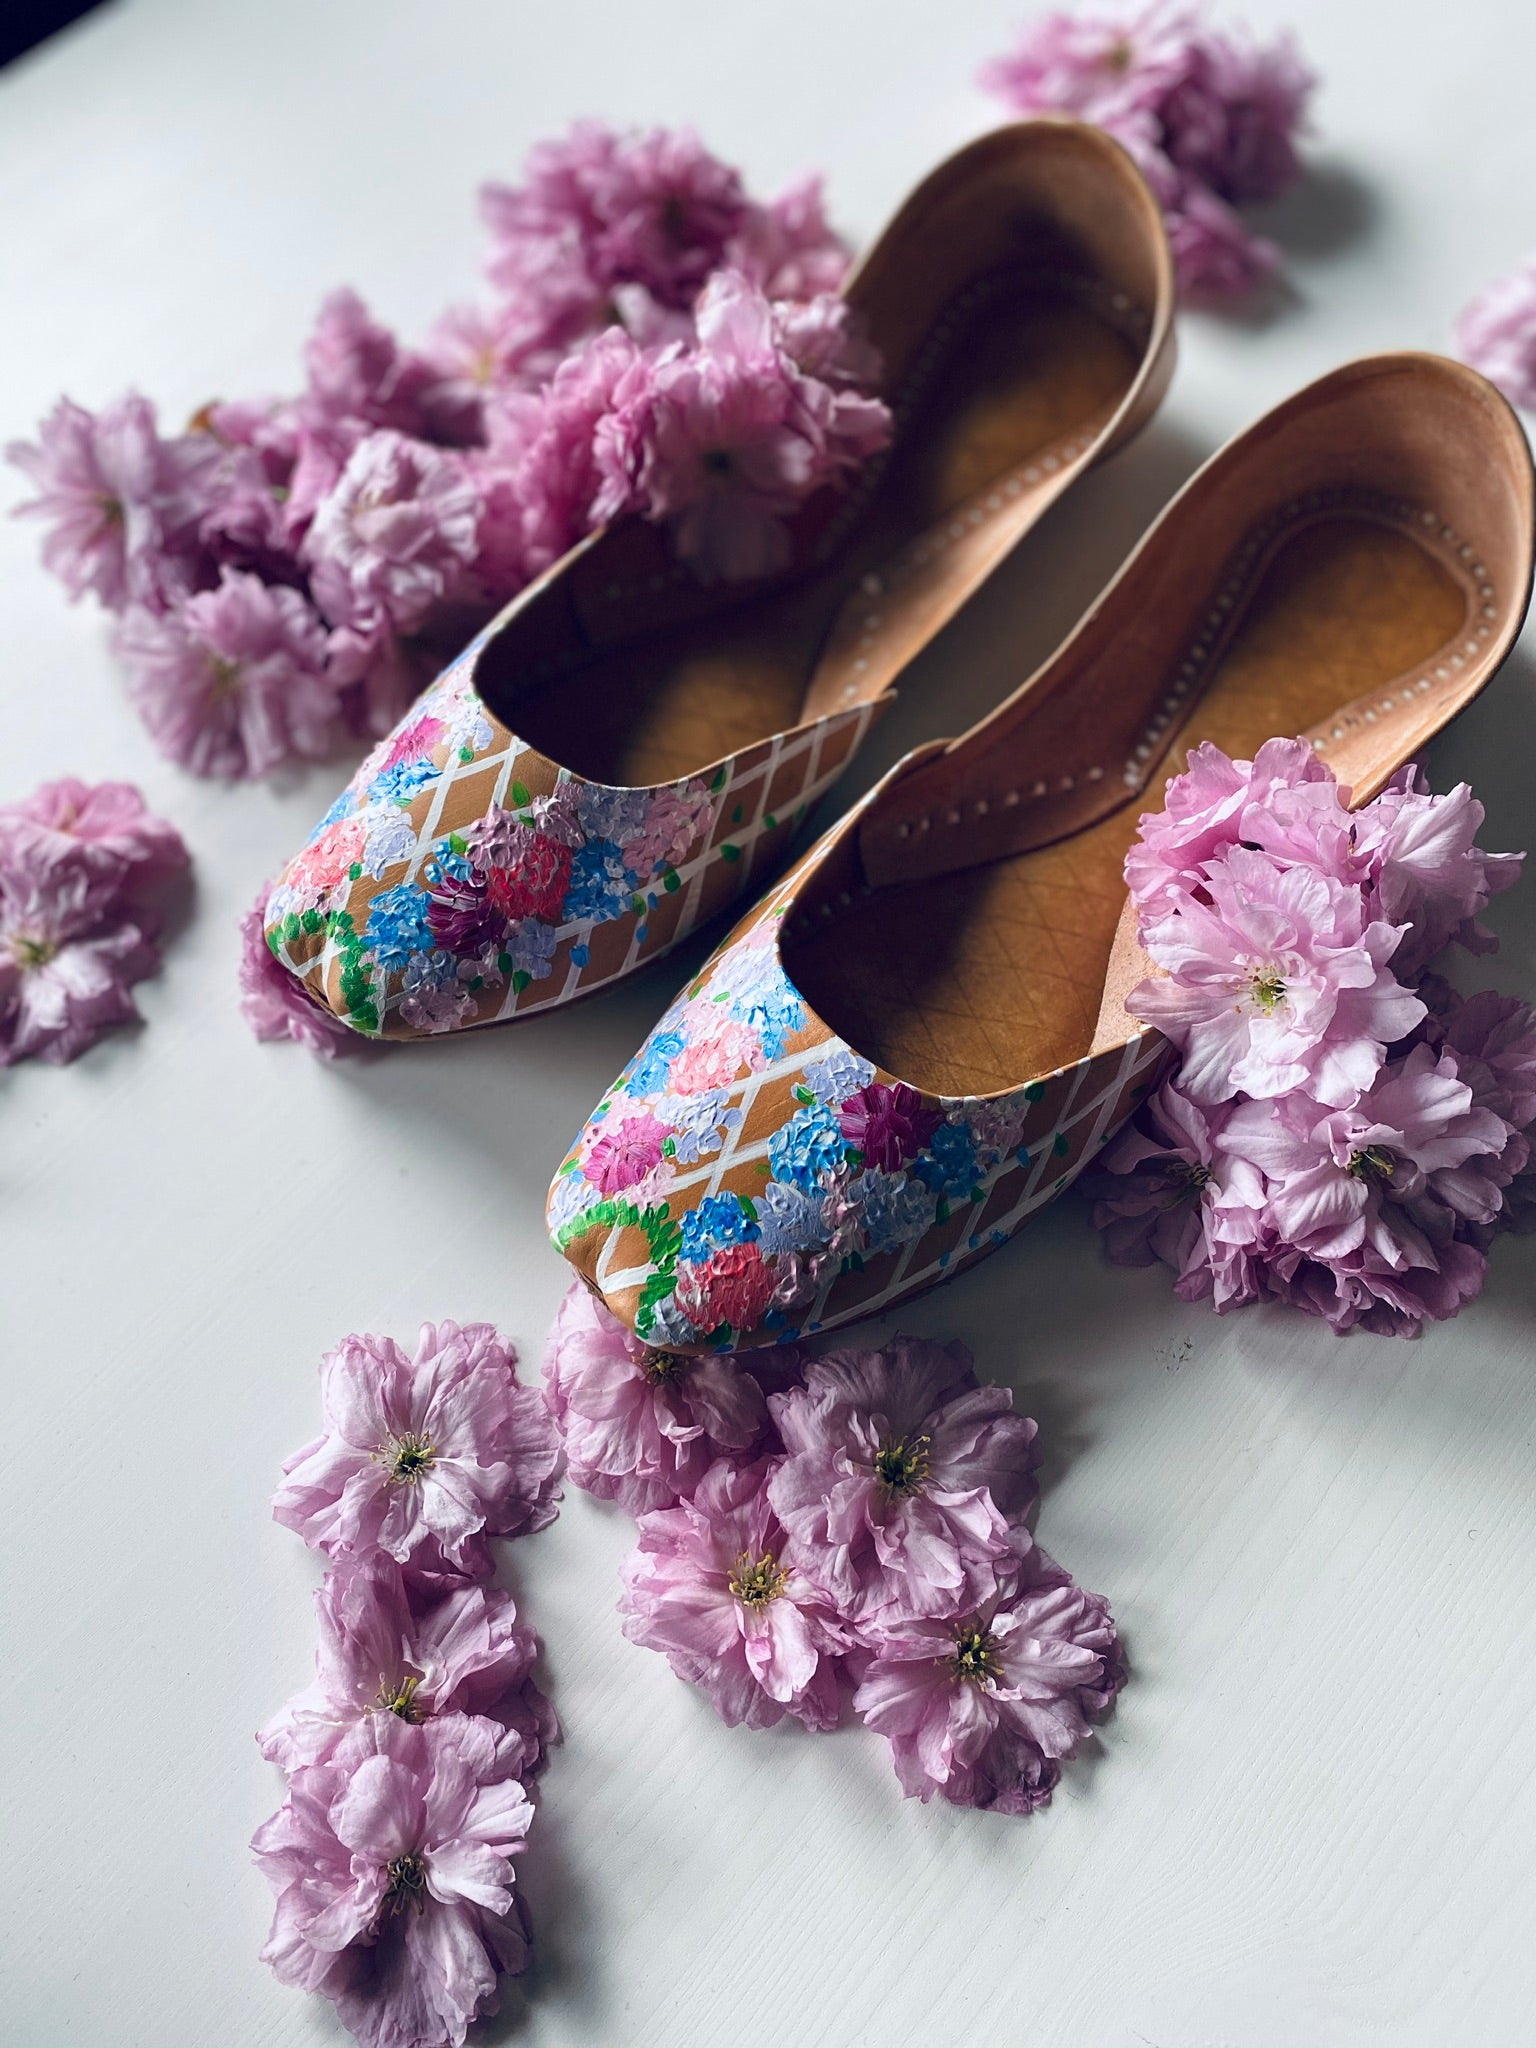 Blooming flowers, hand painted shoes